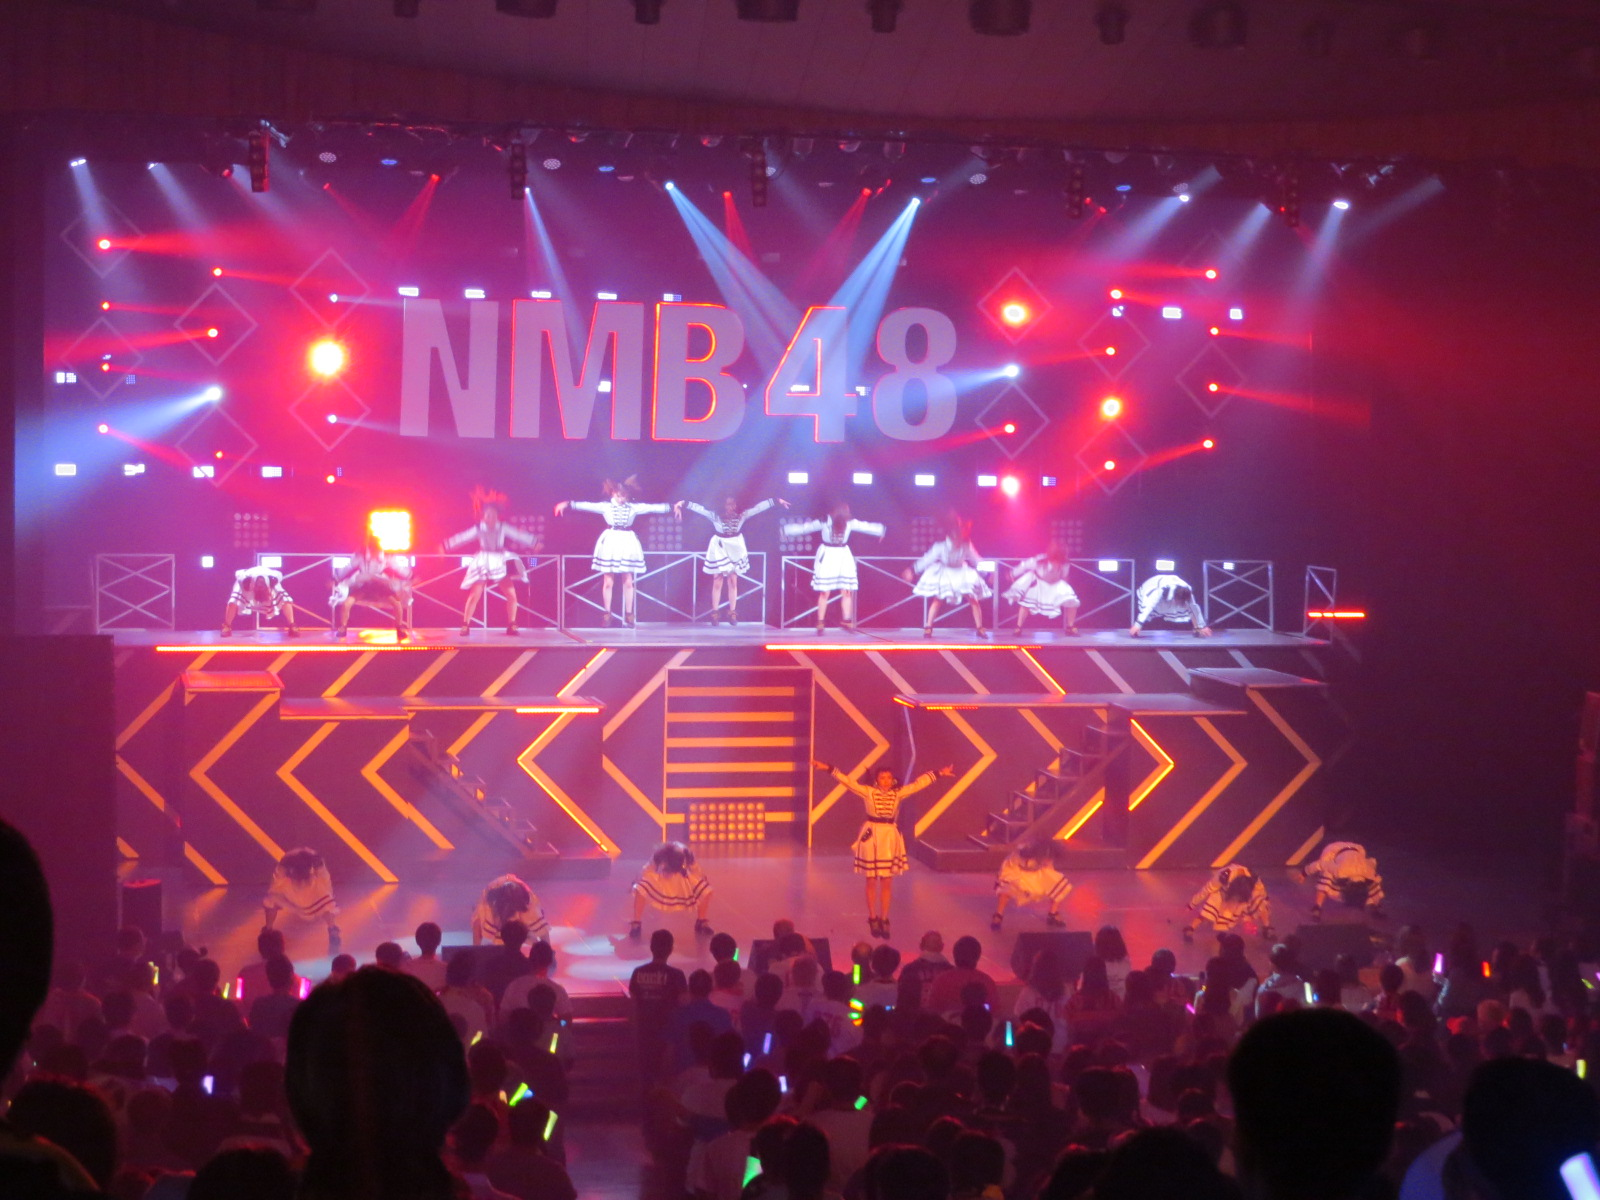 NMB48 LIVE TOUR 2018 in Summer・石川公演の画像-072